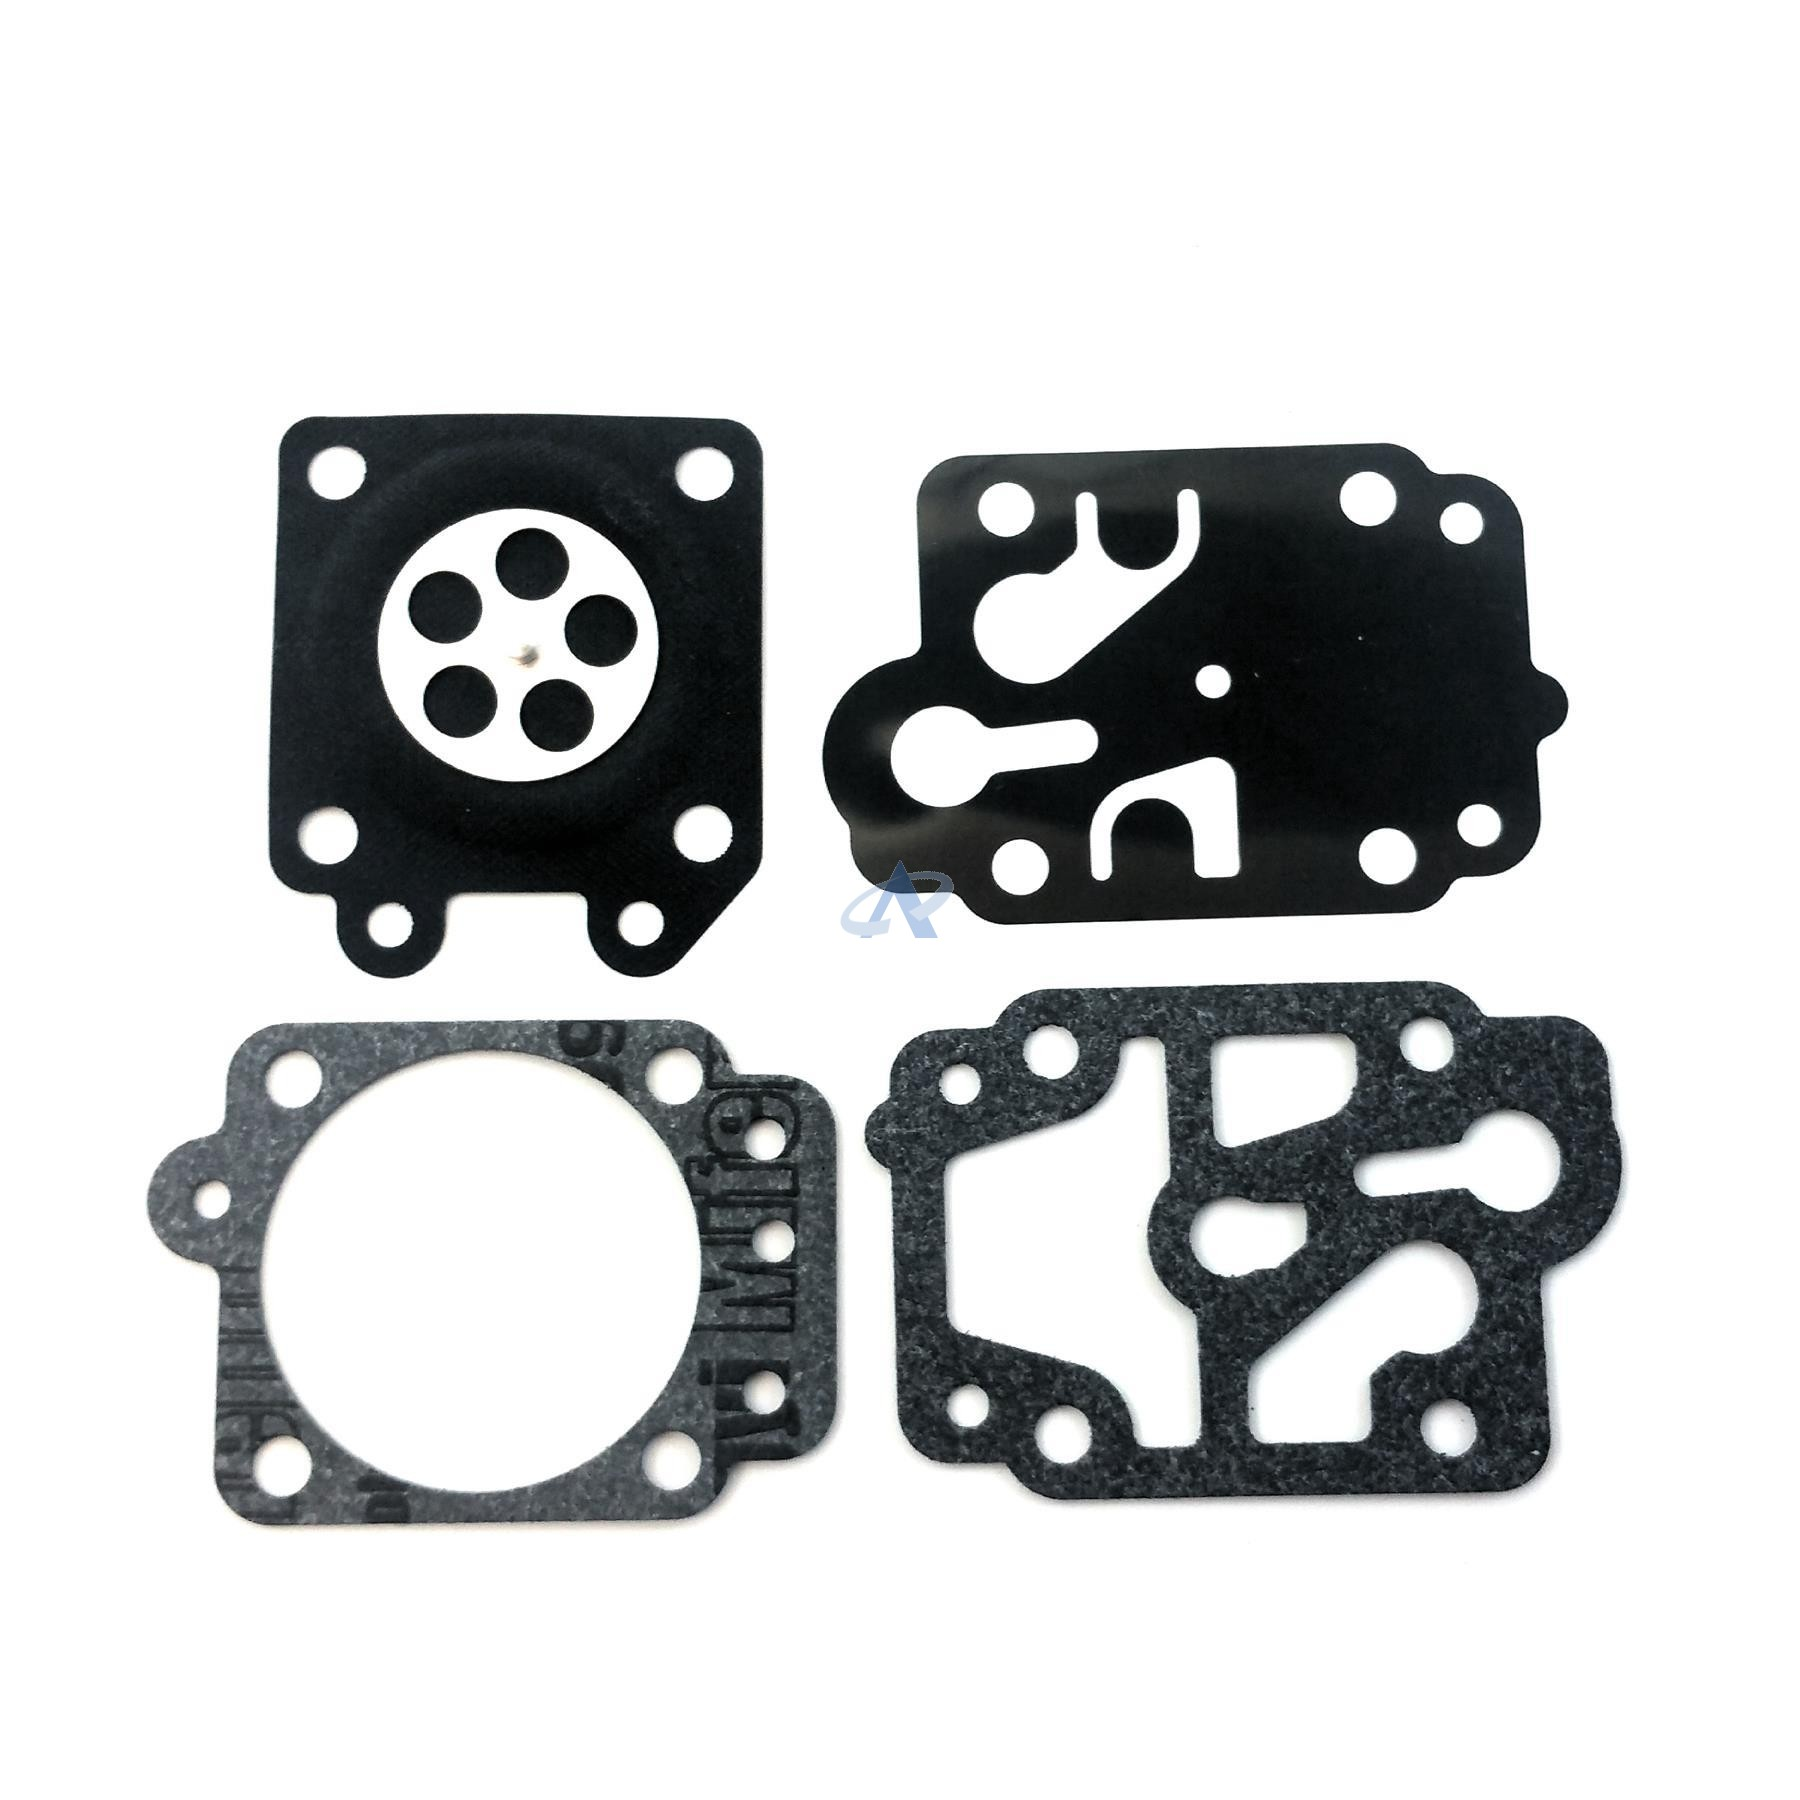 Carburetor Diaphragm Kit for HONDA GX25, GX25 N/NT/T, GX35 /NT, HHT25S,  HHT35S